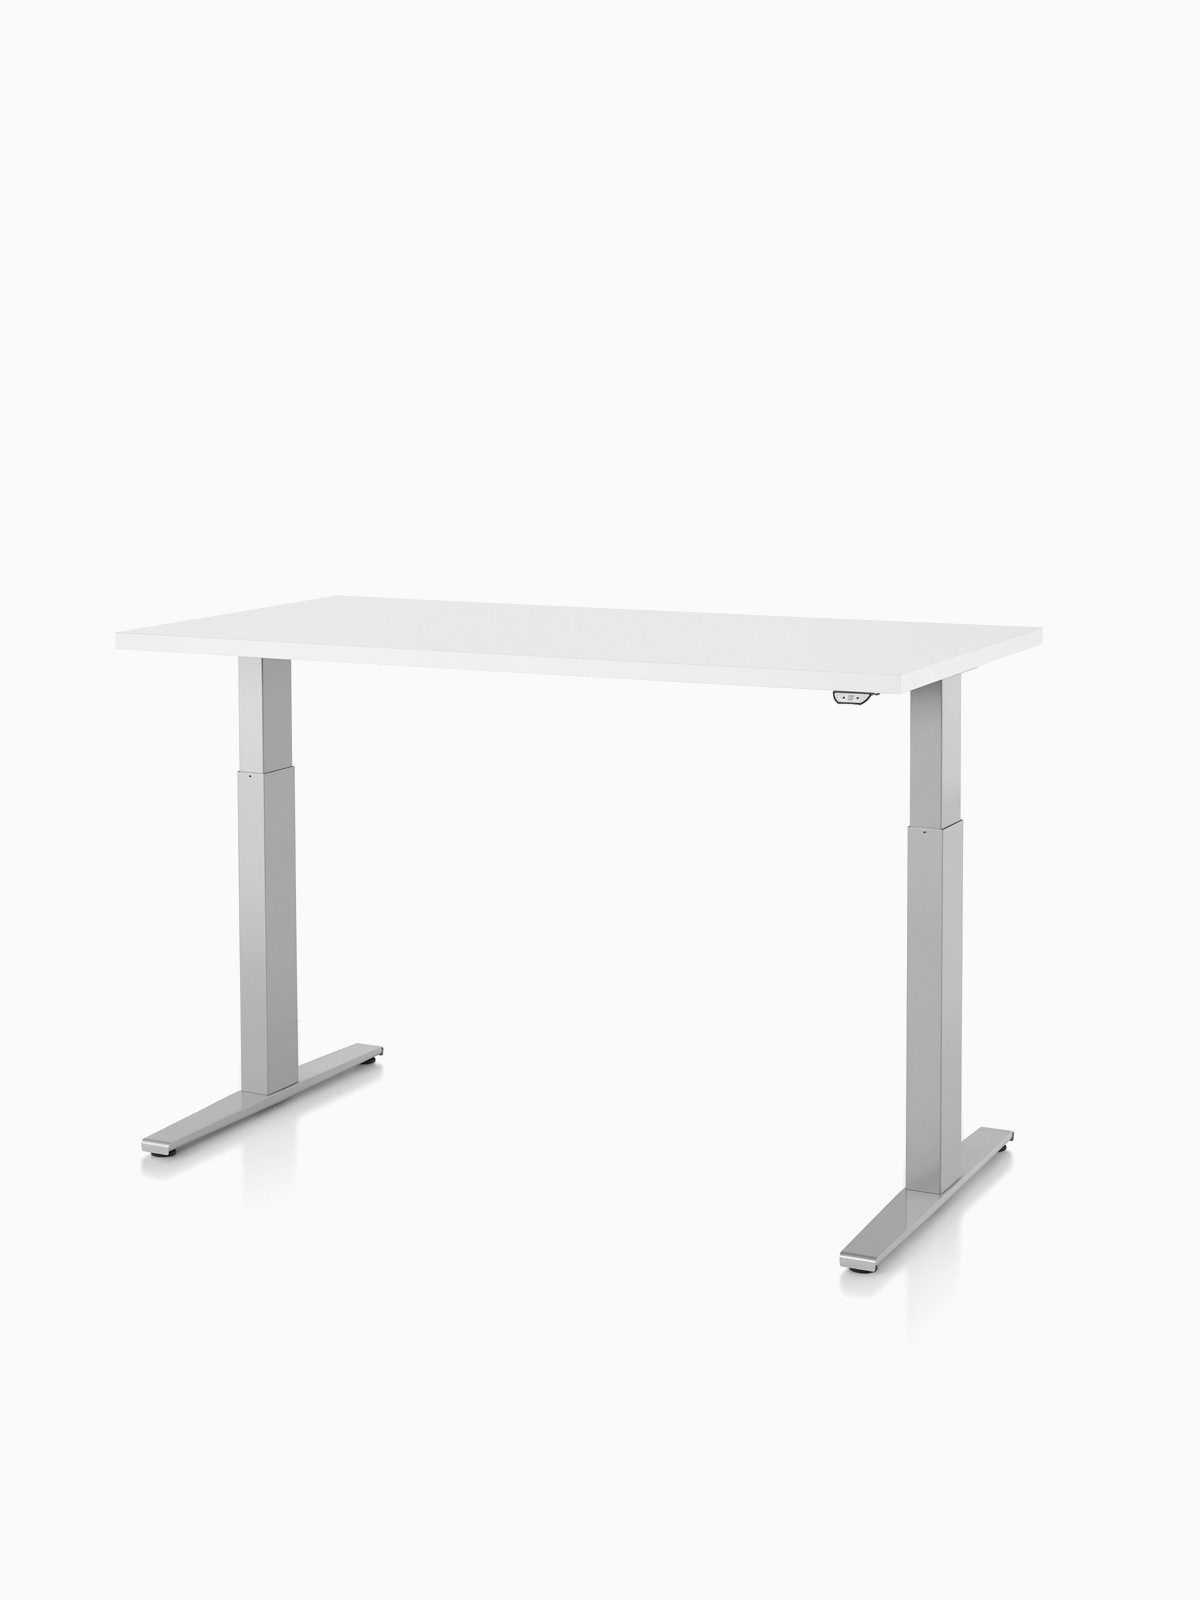 A Motia Sit-to-Stand Table with a white top.